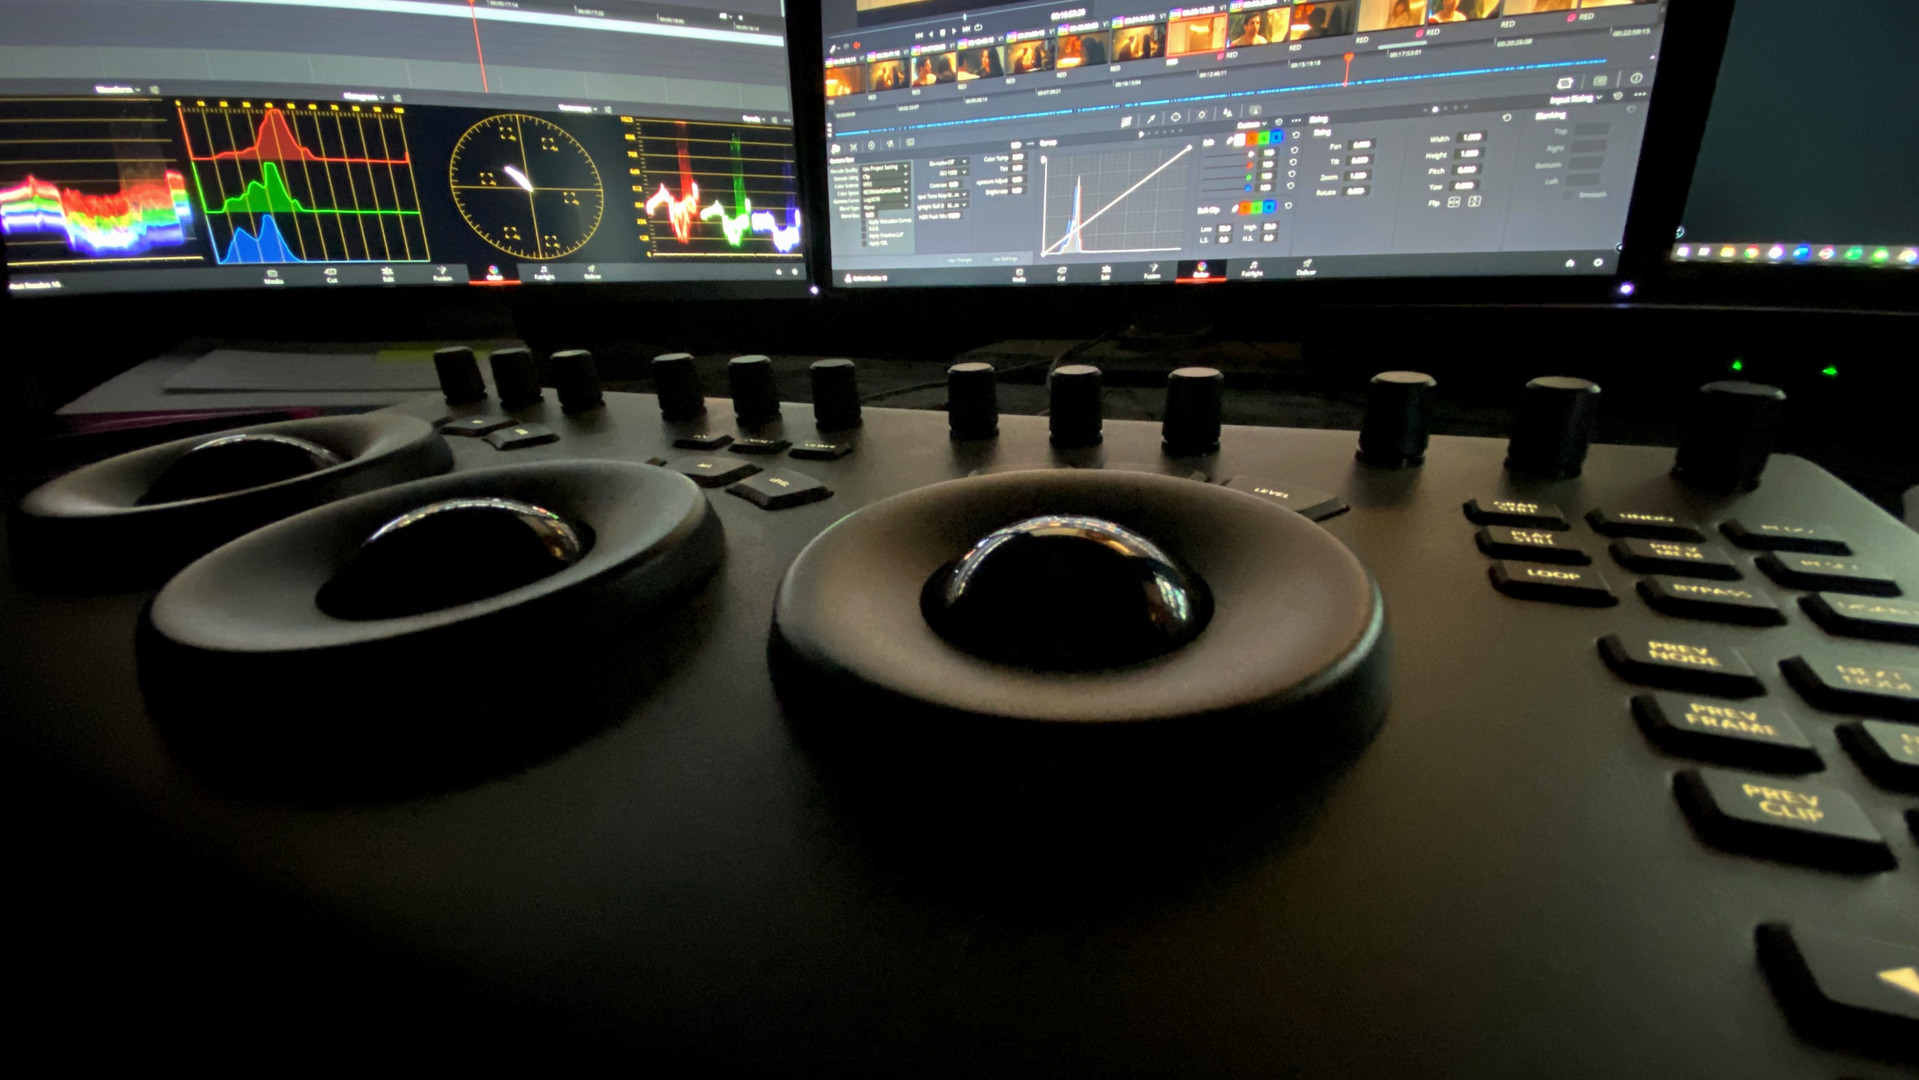 DaVinci Resolve Colour Wheels Controls